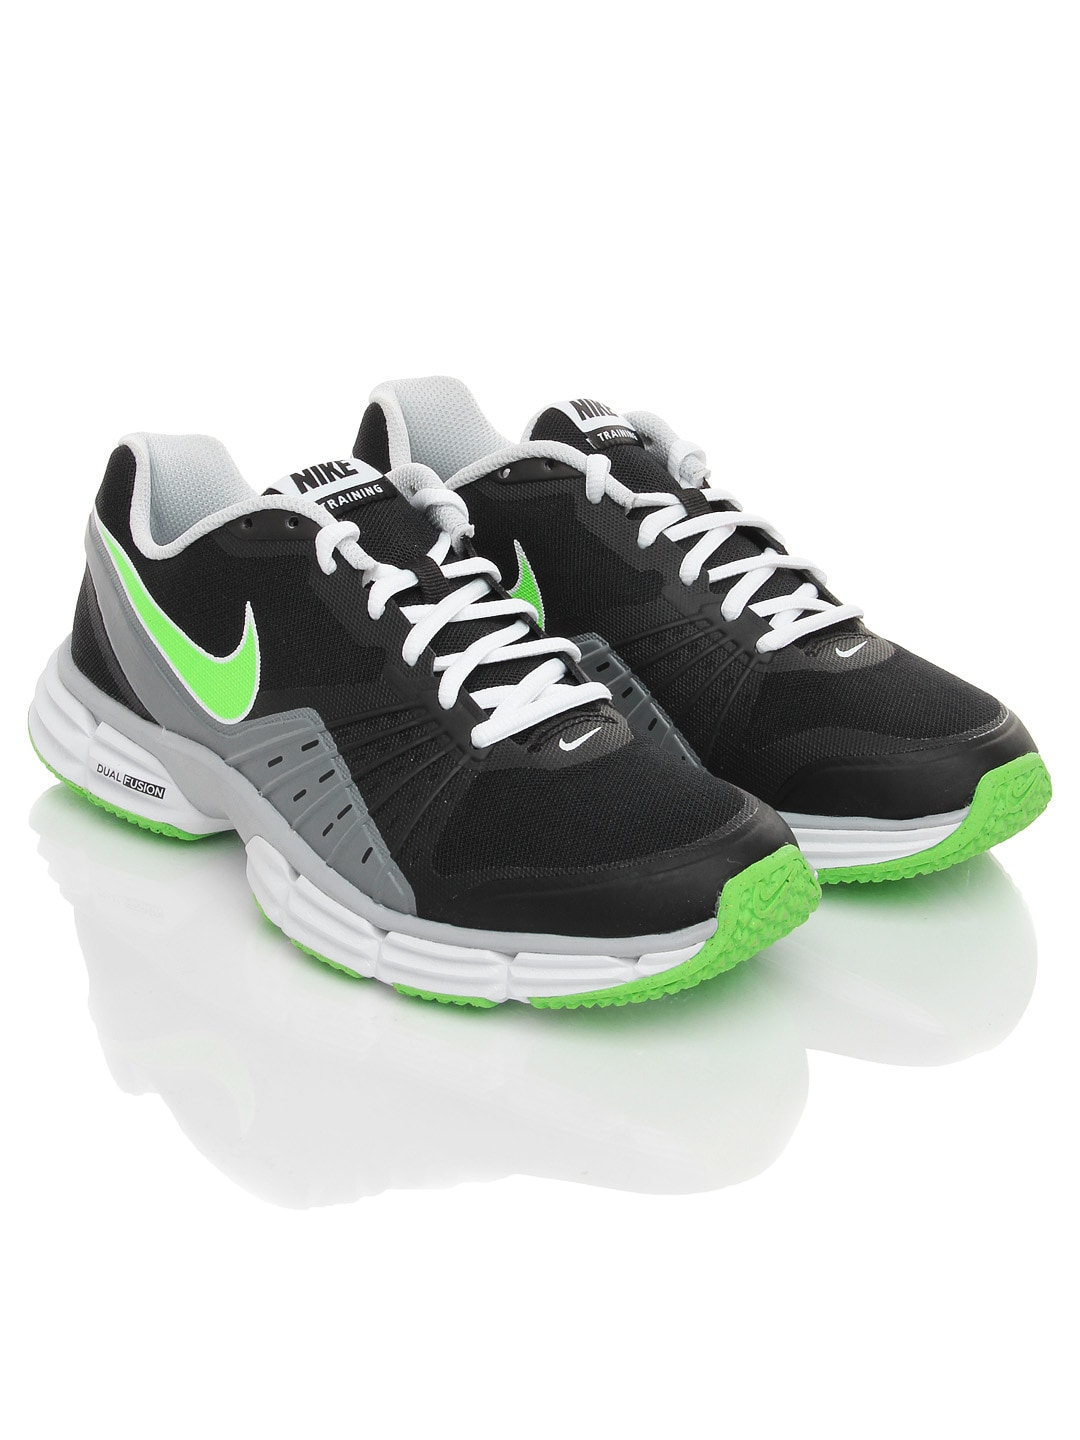 check out 8aac7 3746a nike sneakers dual fusion price Retail Nike Zoom Kobe Basketball Shoes in,  Honor a watershed moment ...